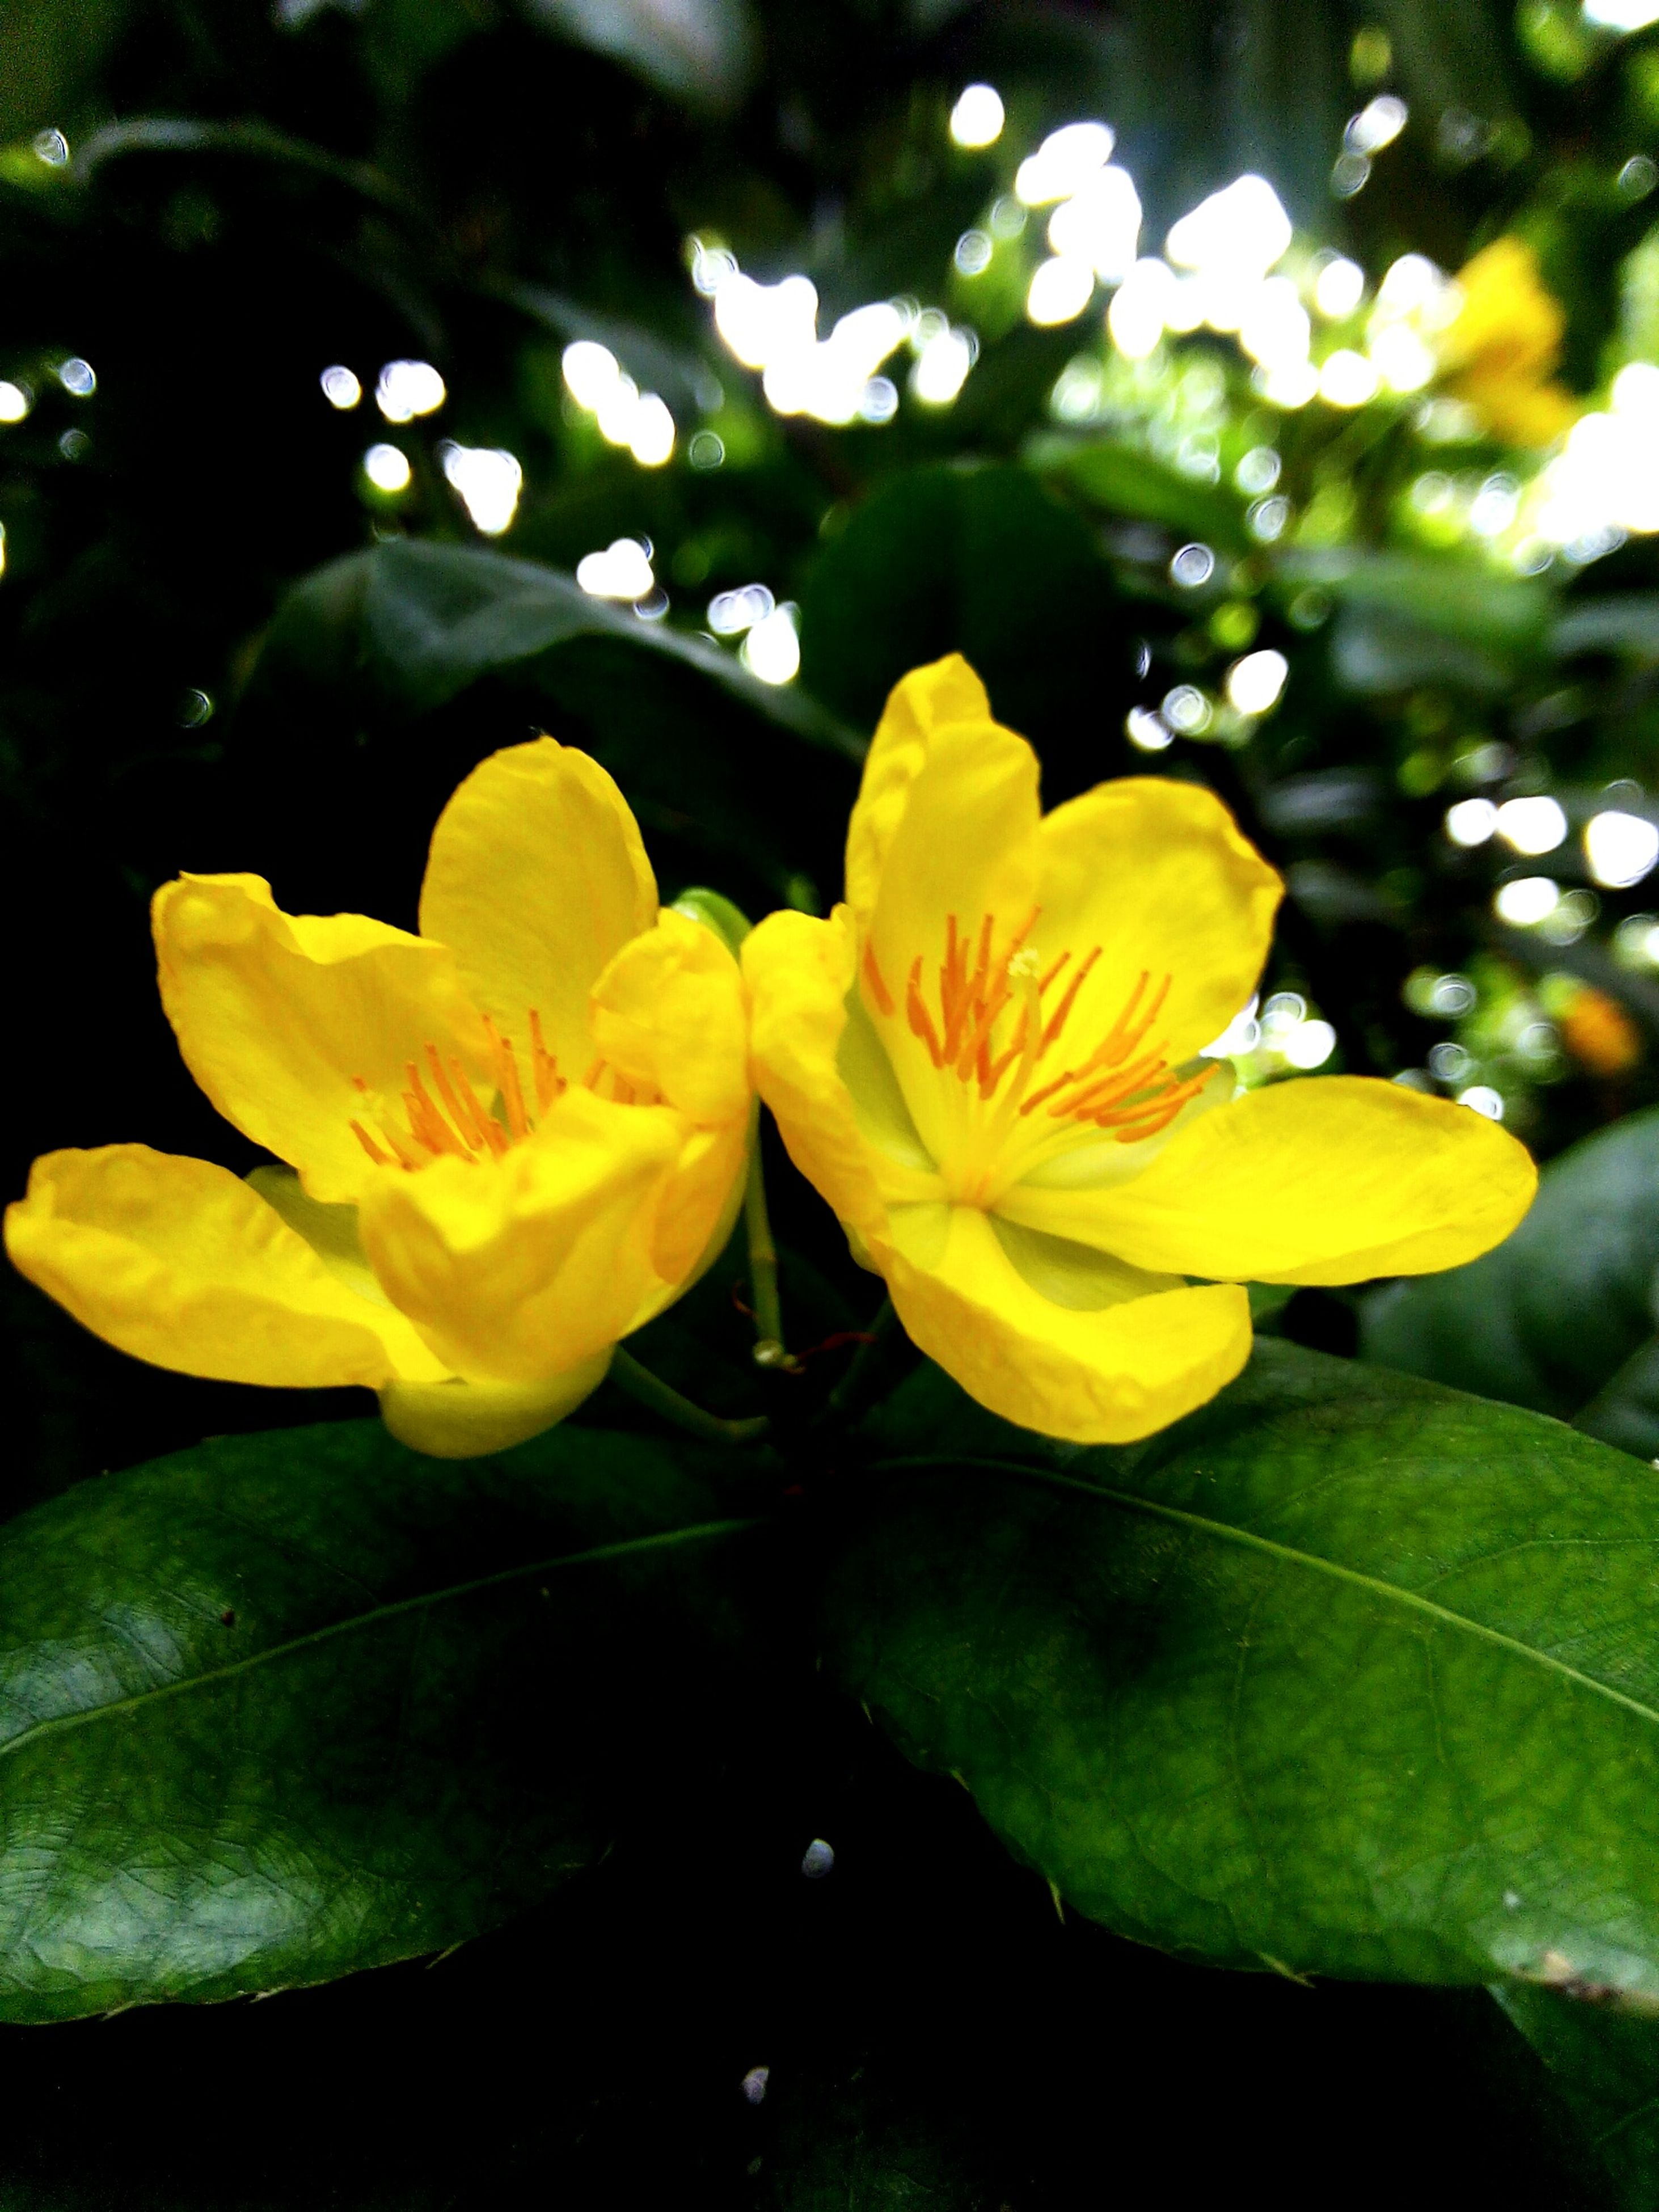 flower, petal, yellow, freshness, fragility, growth, flower head, beauty in nature, close-up, focus on foreground, leaf, nature, plant, blooming, park - man made space, day, green color, outdoors, in bloom, no people